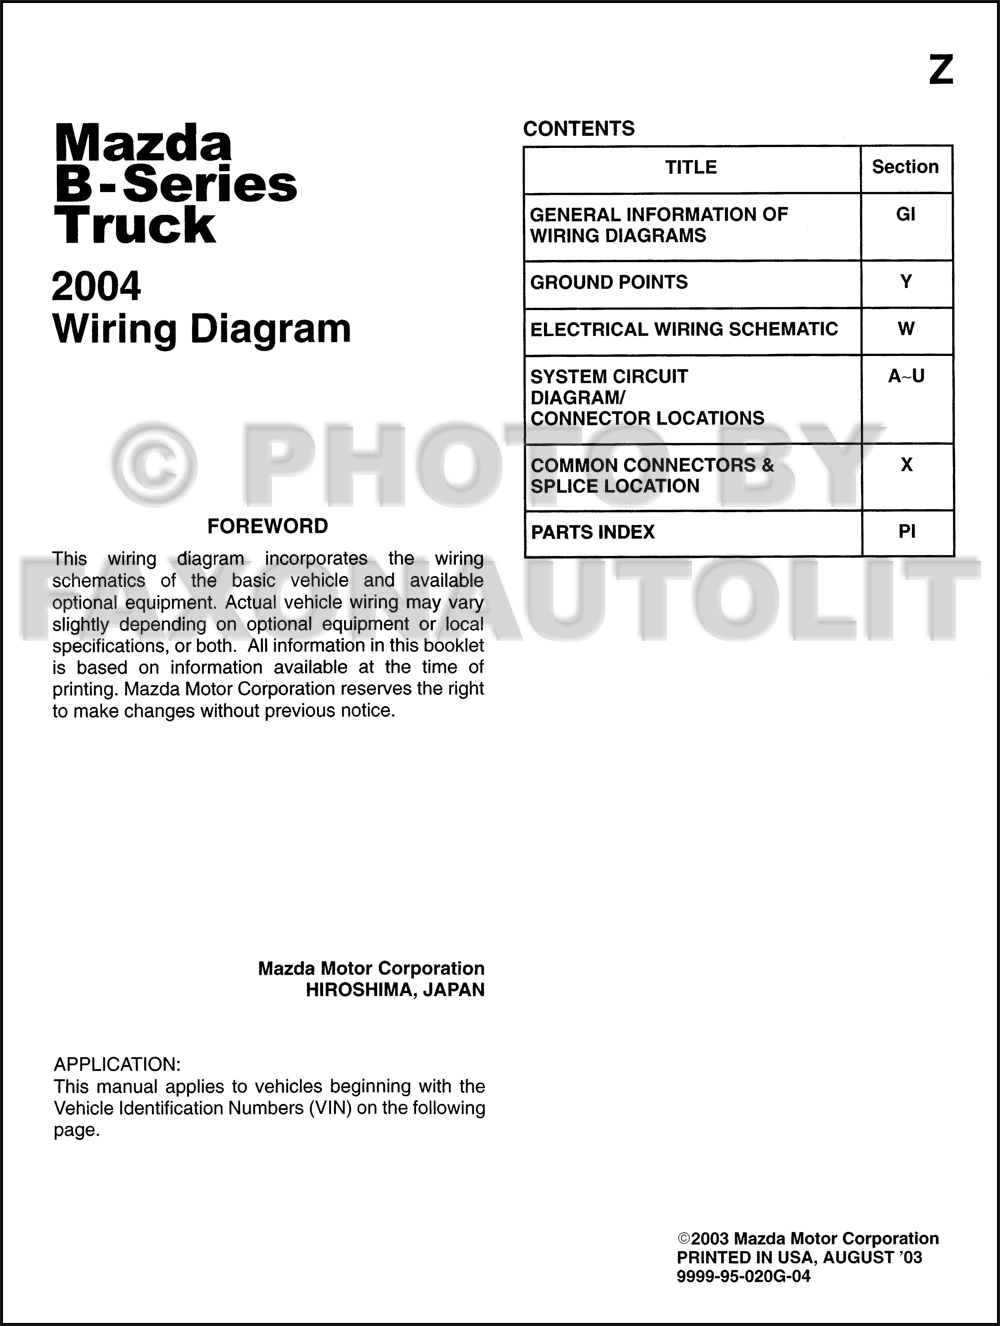 Stereo Wiring Diagram 96 Mazda 626 Trusted Diagrams Electrical Truck Block And Schematic U2022 Alternator